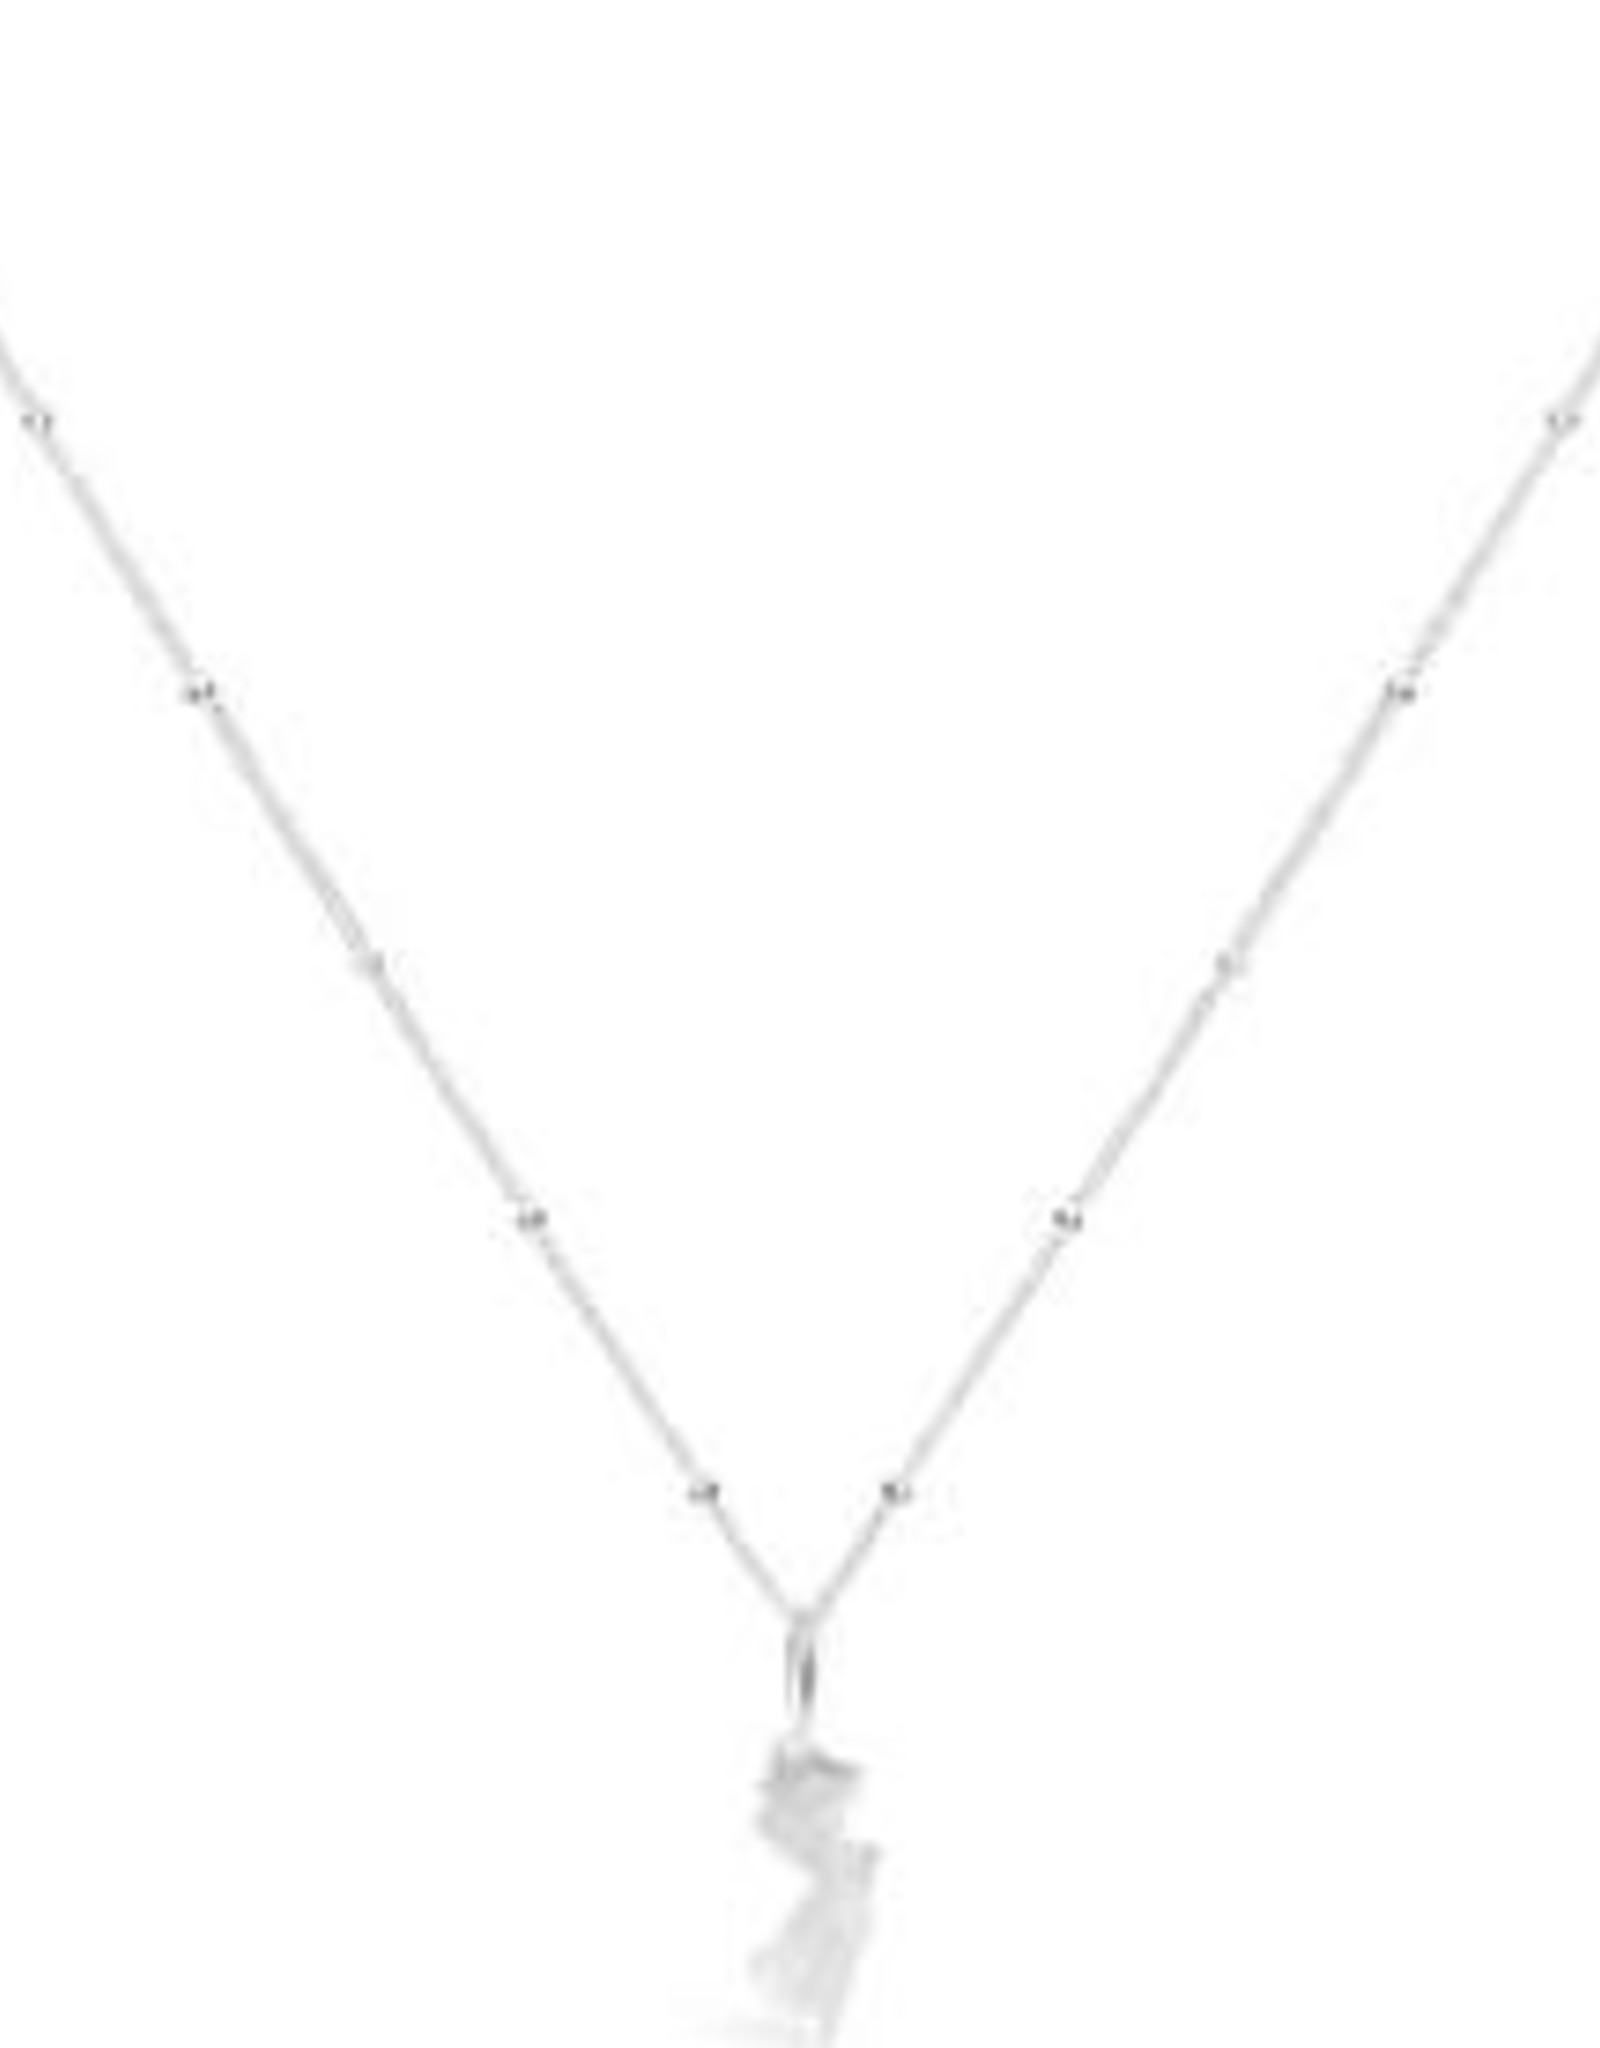 Stia Jewelry Necklace Sterling Silver - New Jersey